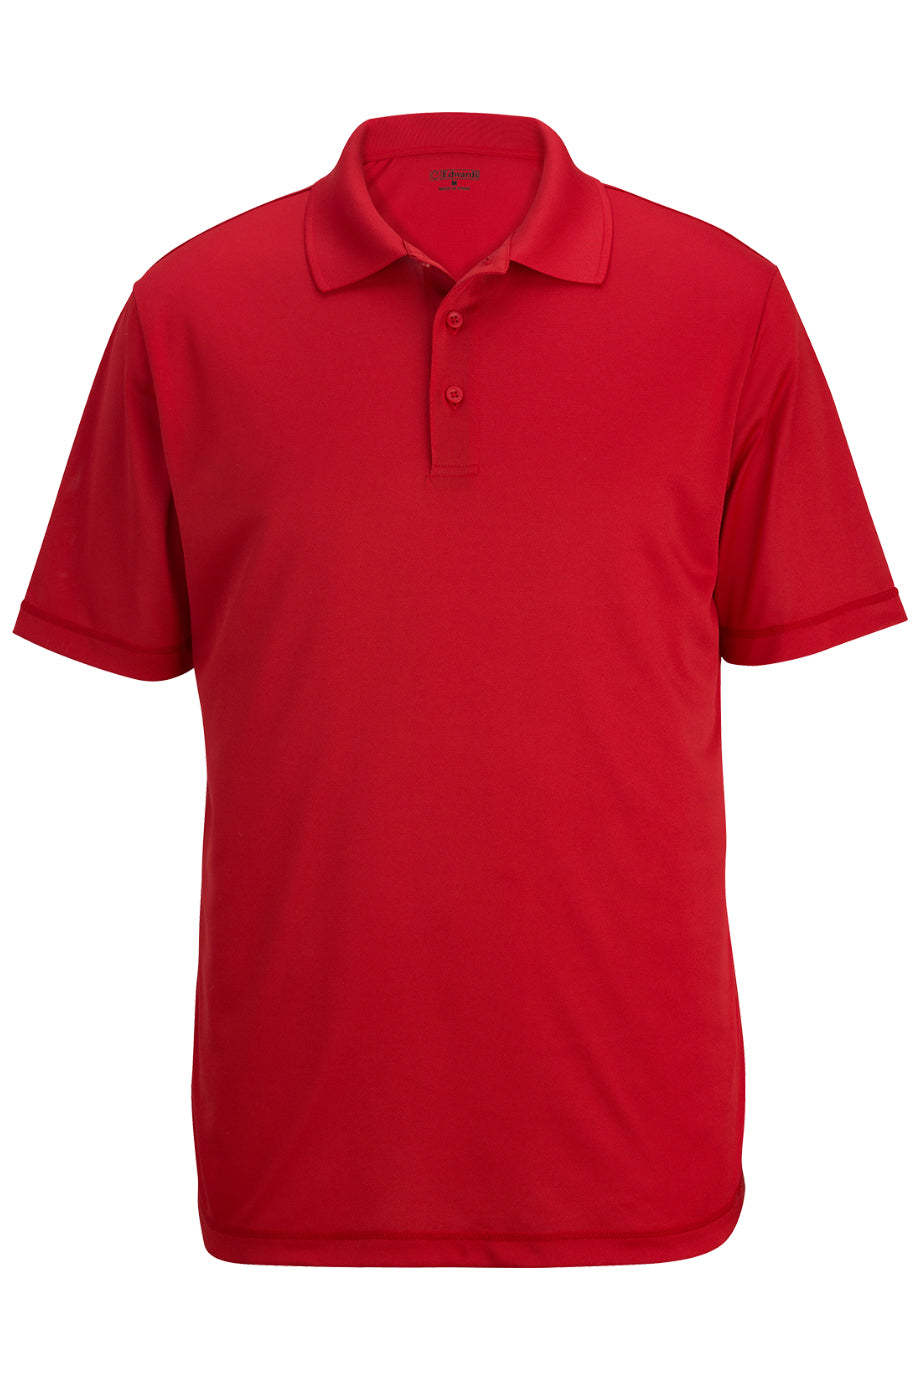 Red Edwards Mens Durable Performance Polo